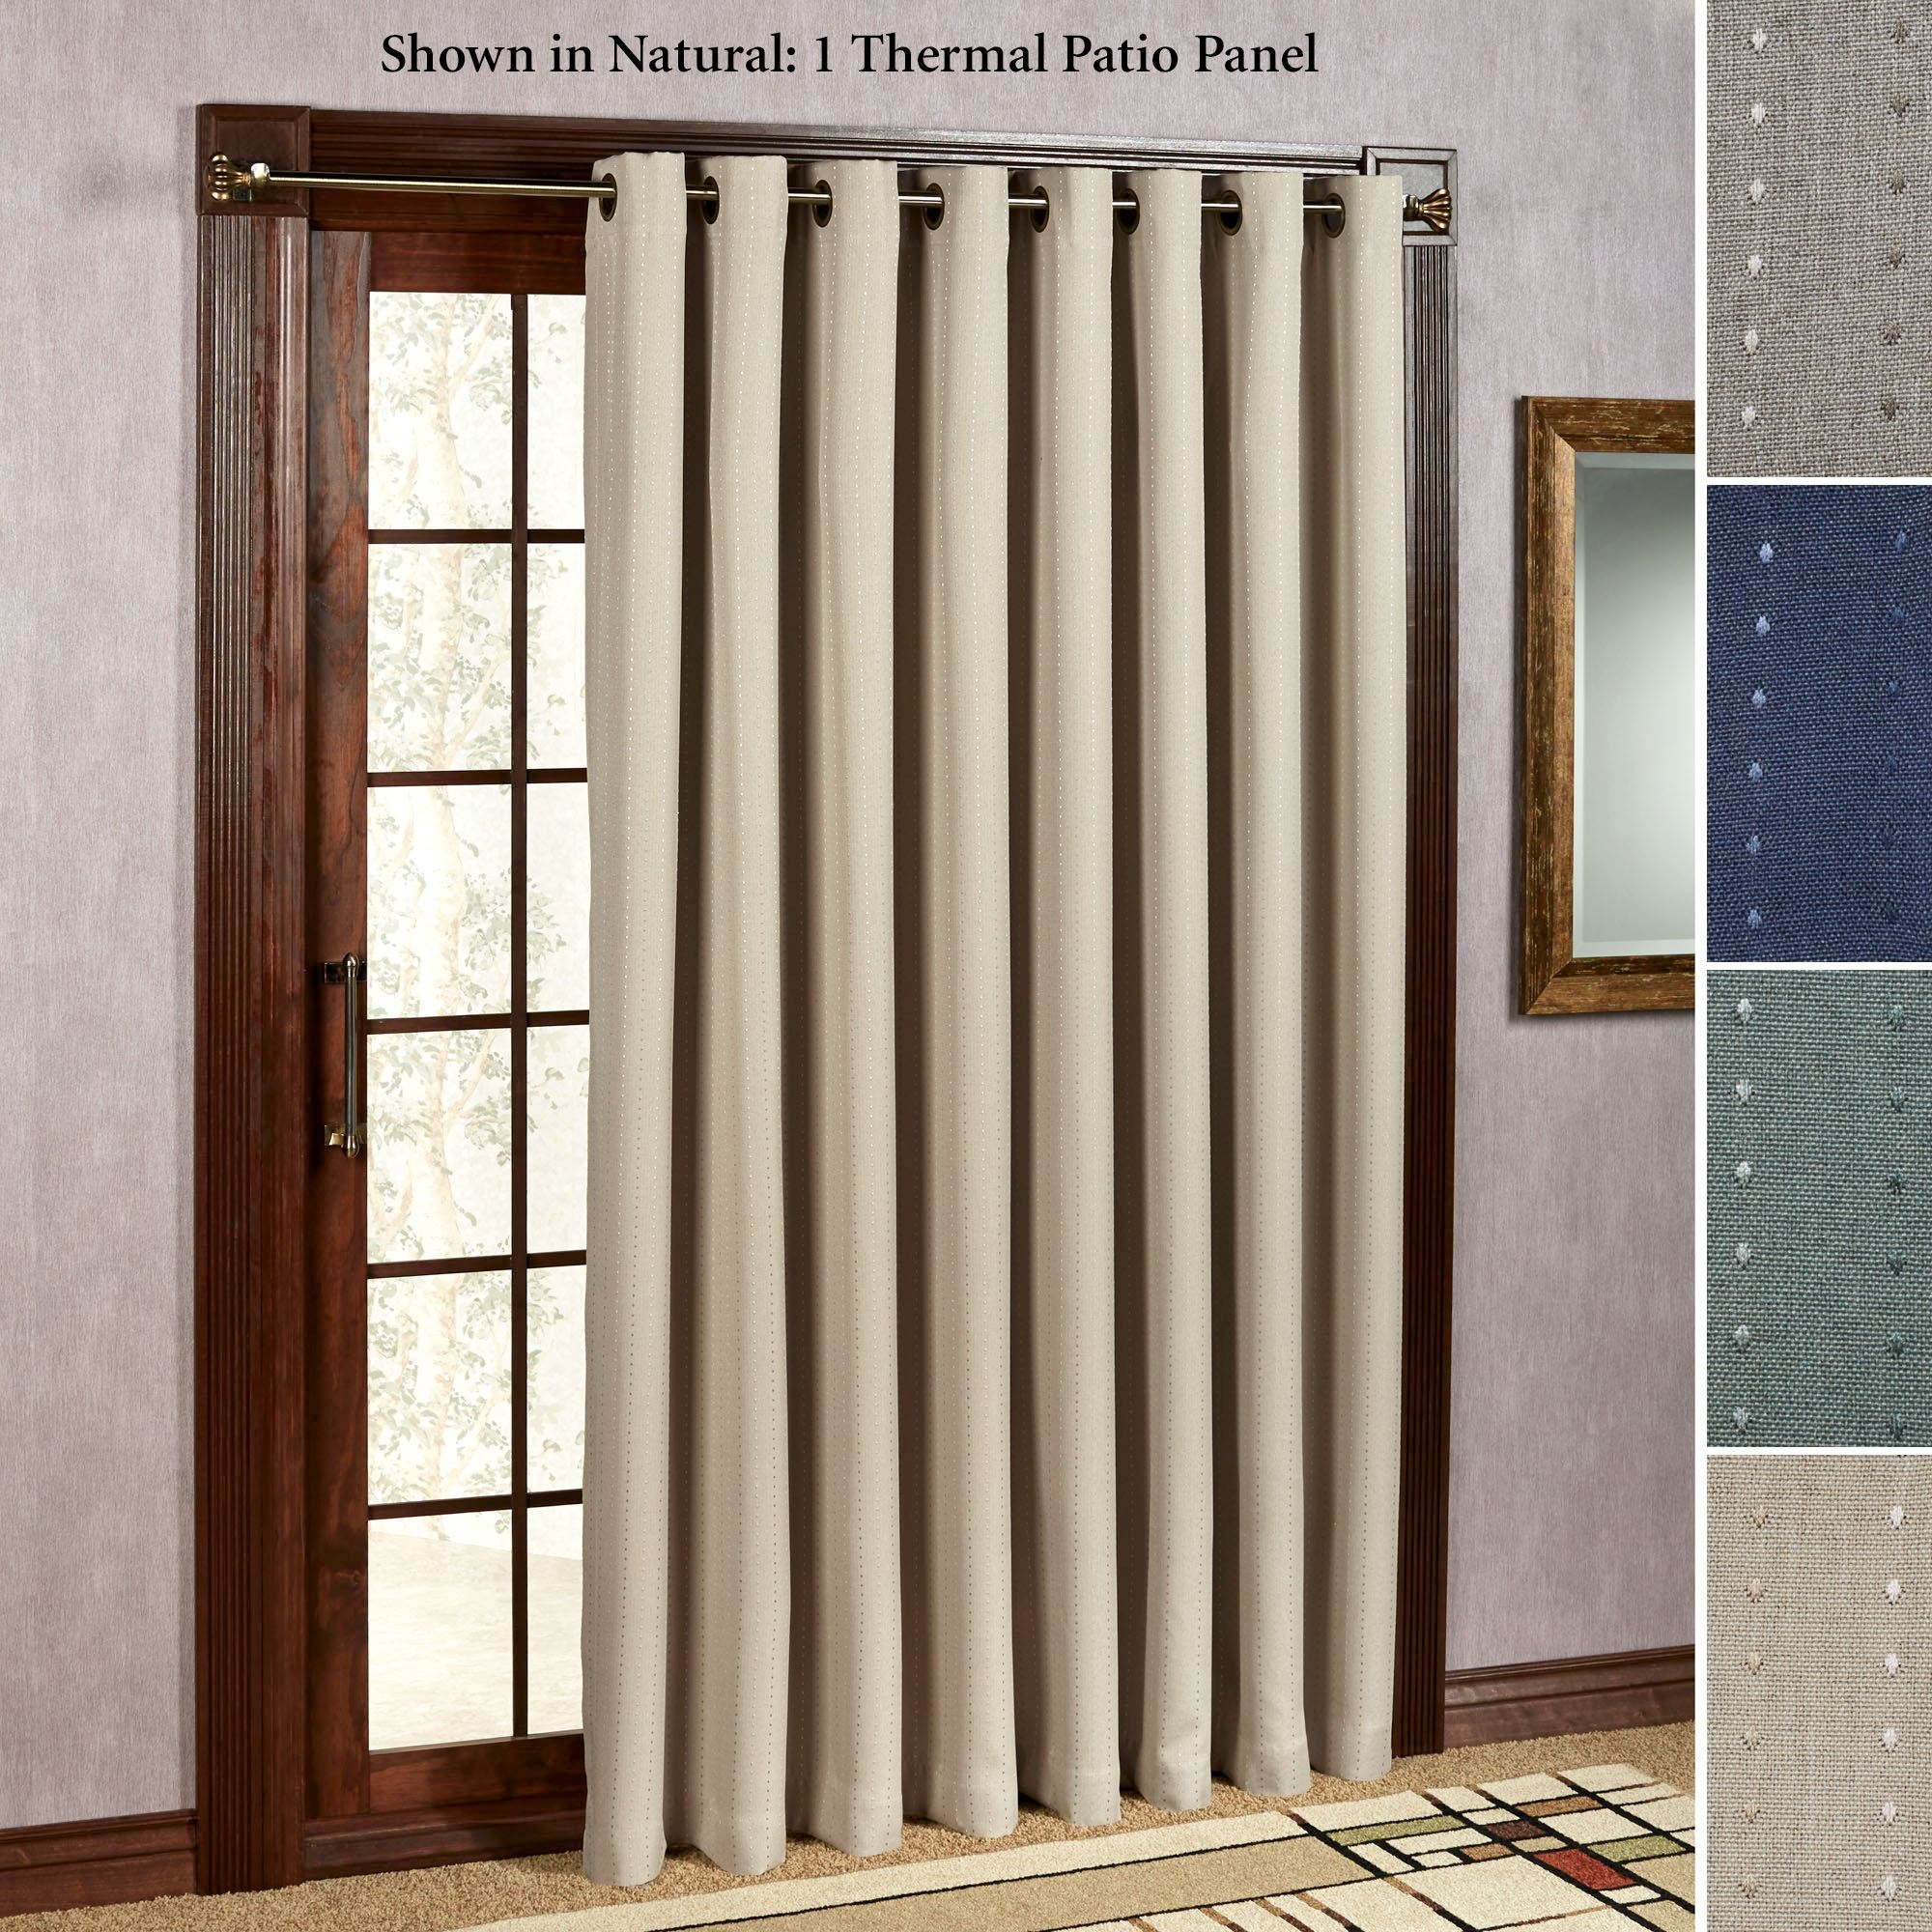 Sliding Patio Door Panelspatio door curtain panels touch of class